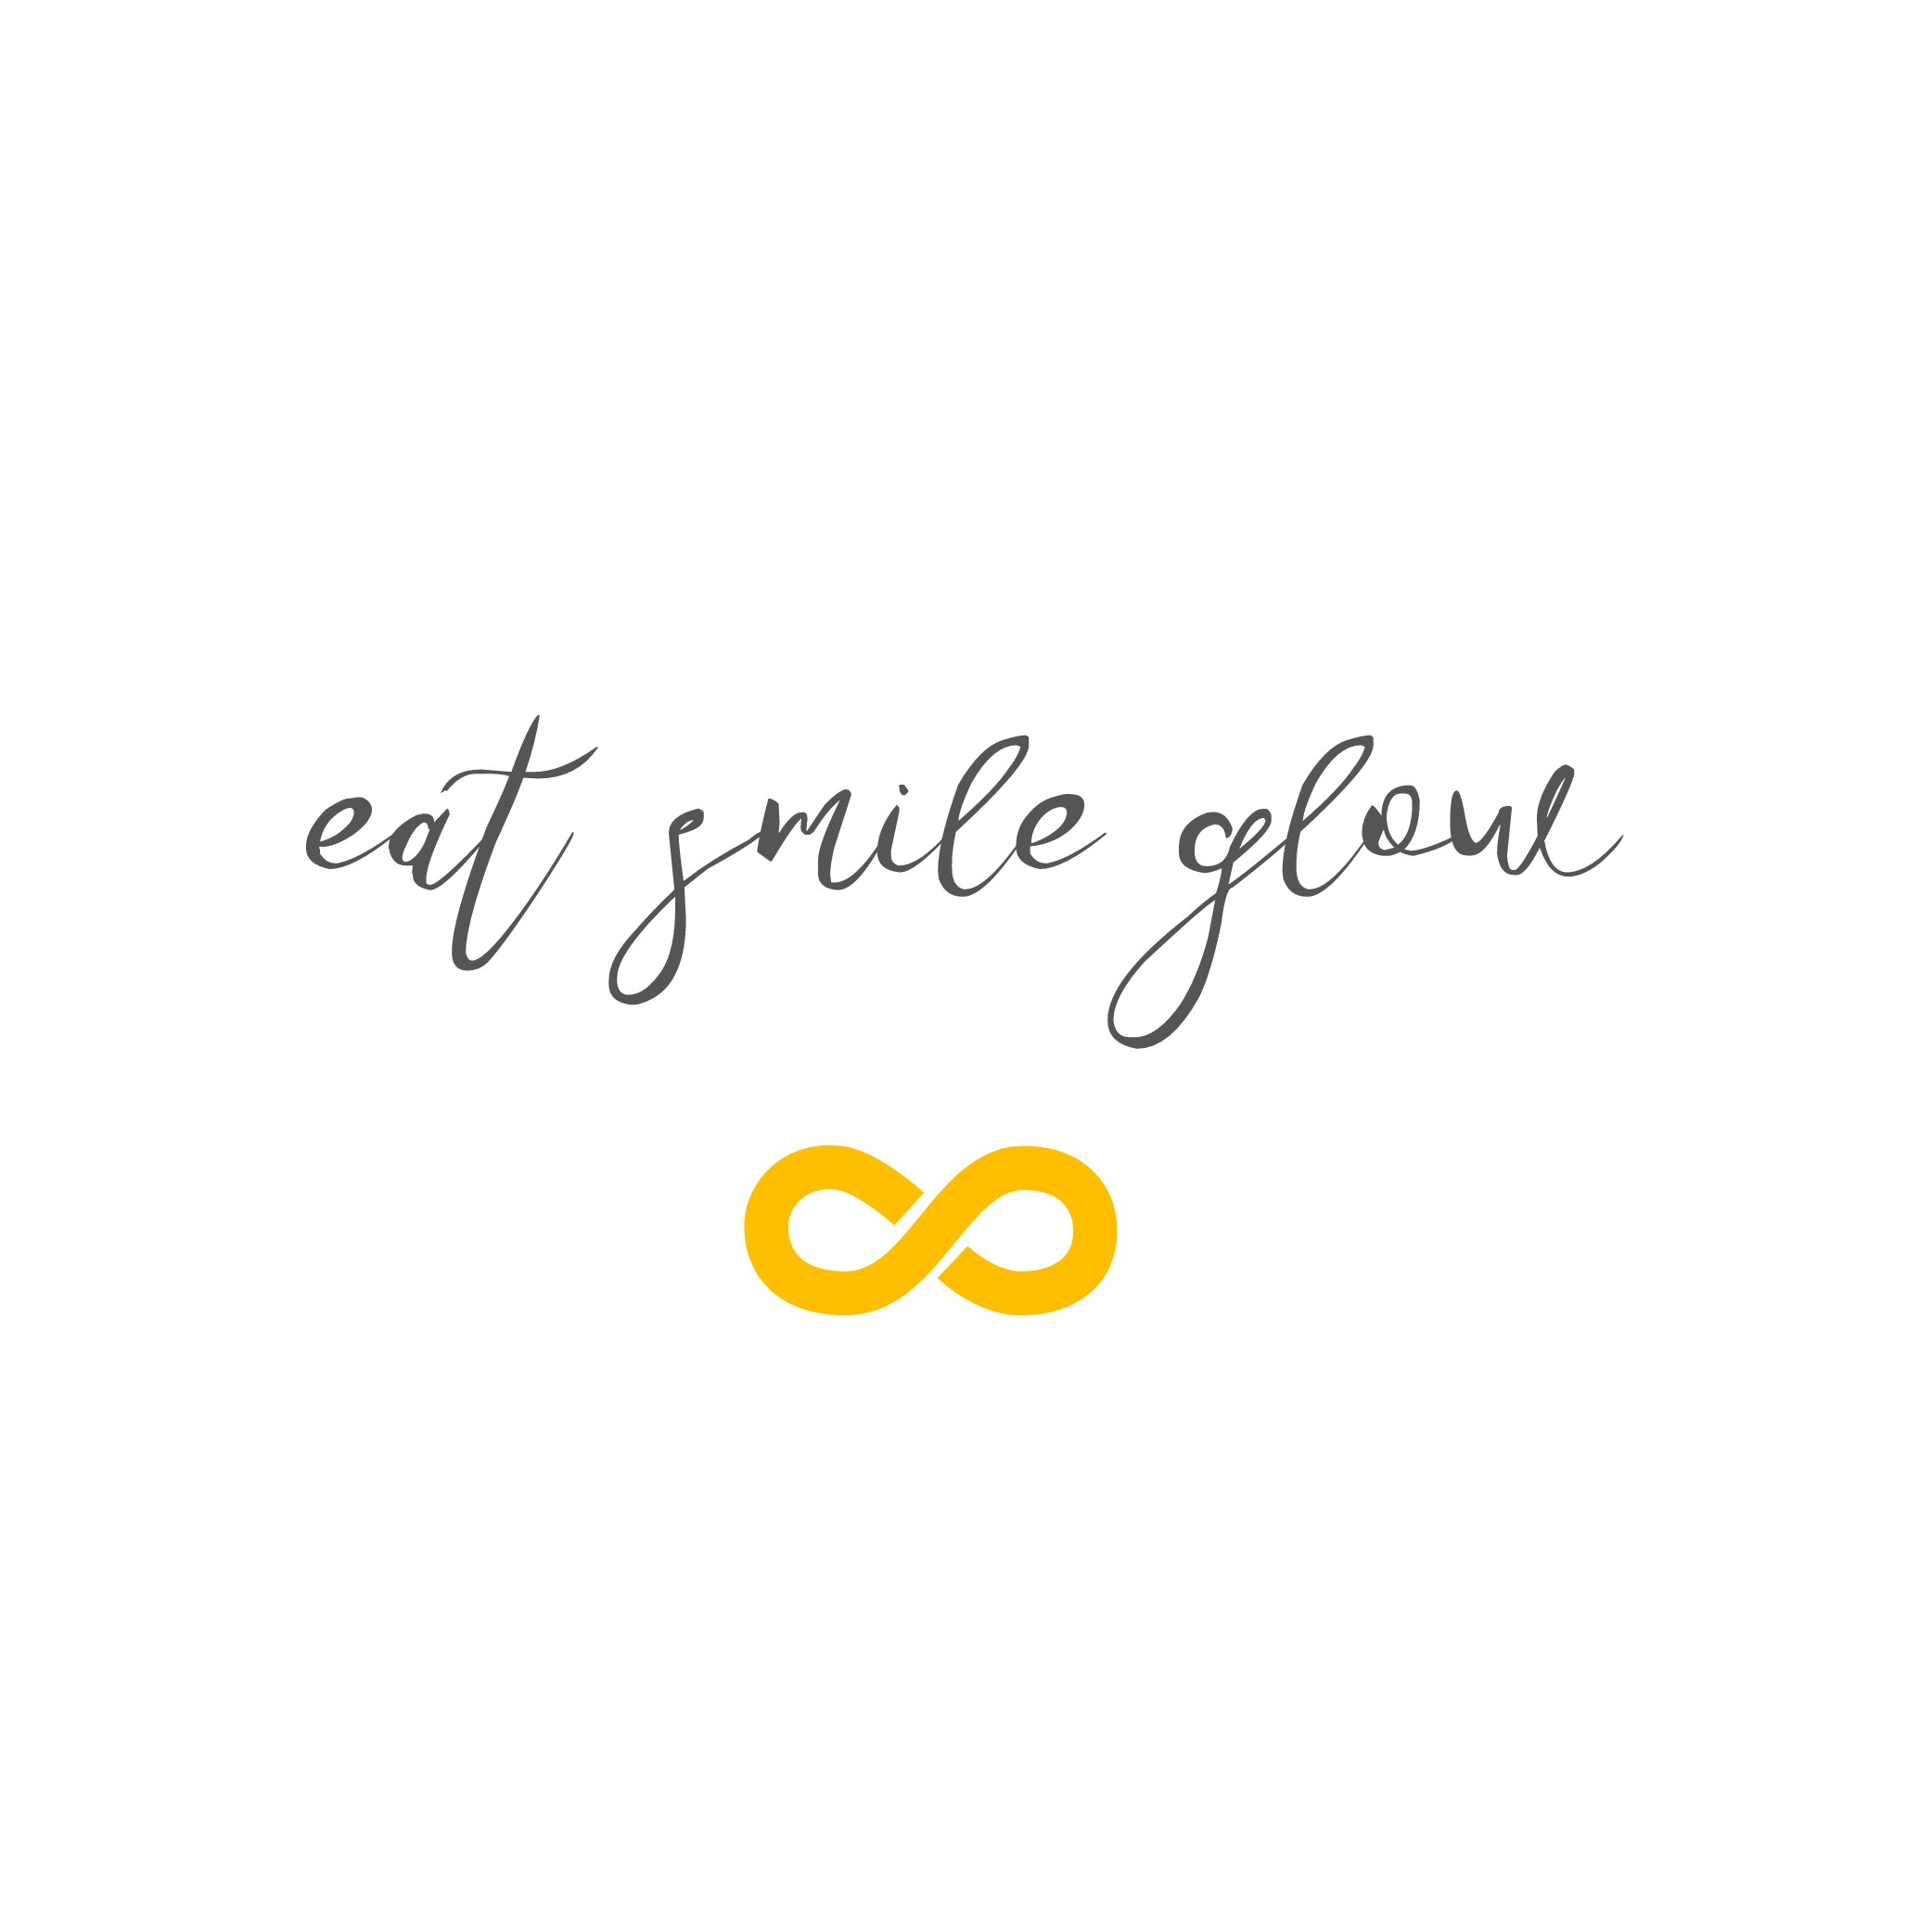 Design a logo for Eat Smile Glow a lifestyle, wellness and beauty business